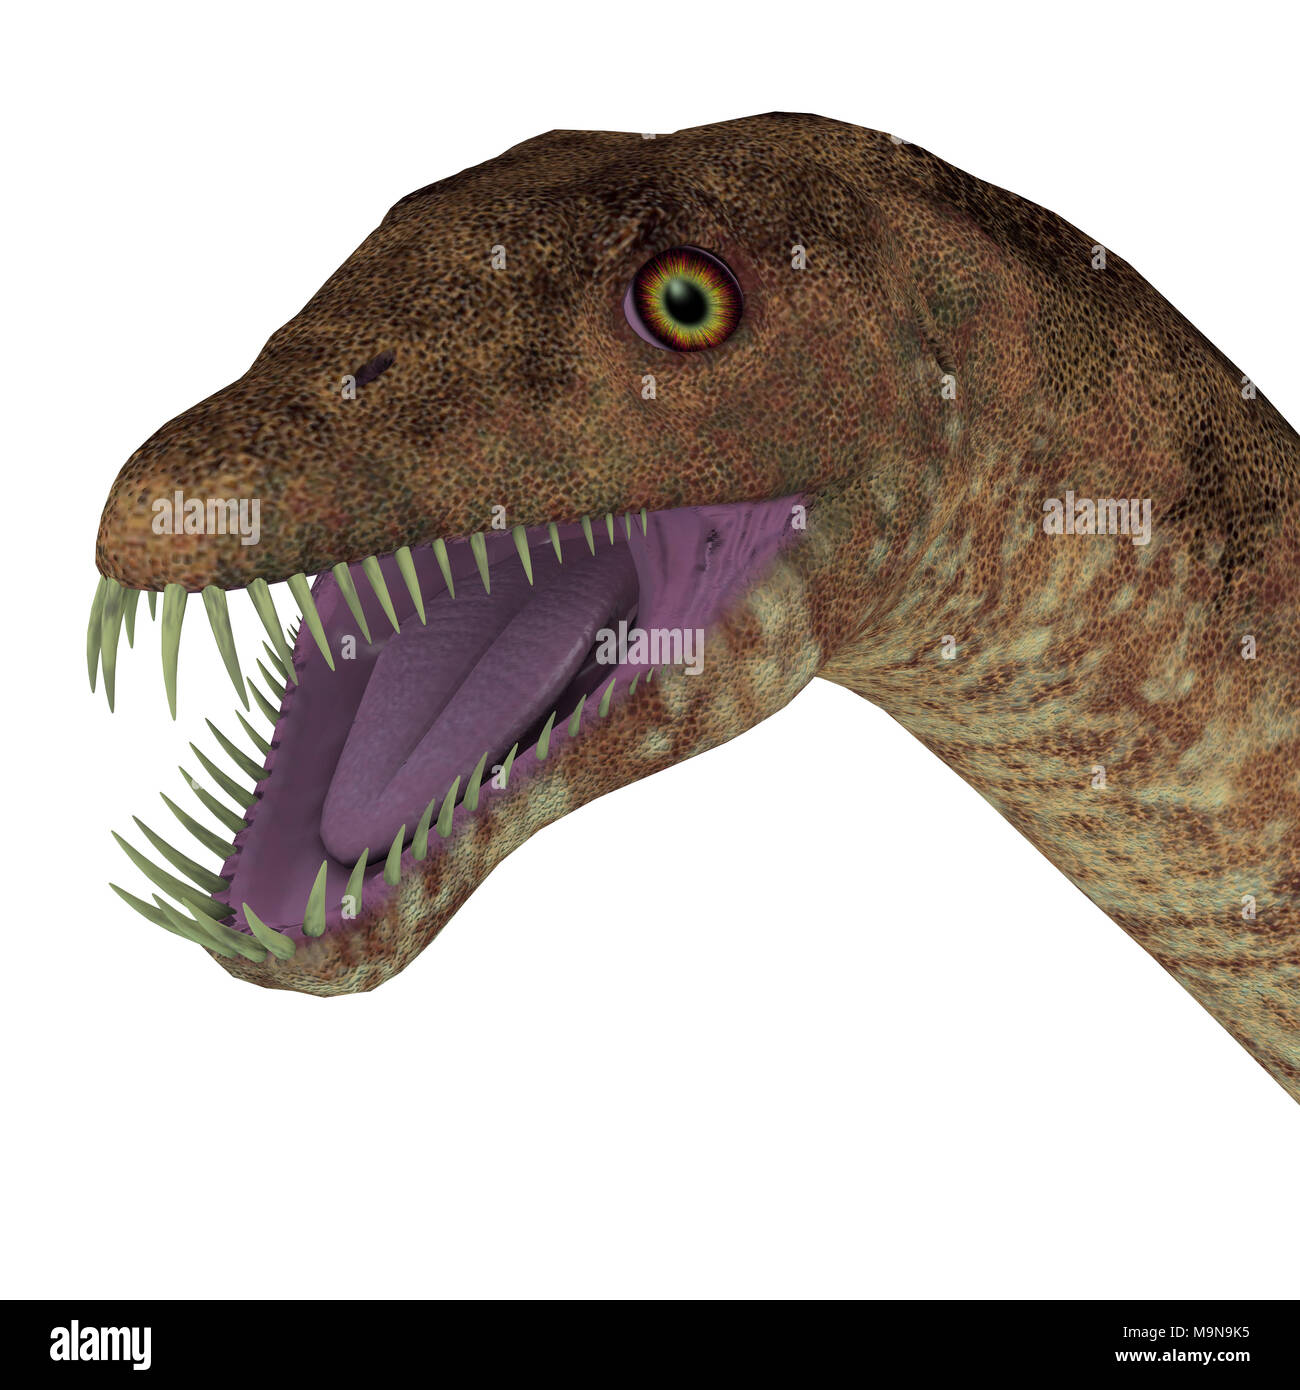 Tanystropheus Dinosaur Head - Tanystropheus was a marine predatory reptile that lived in the Triassic Seas of Europe and the Middle East. - Stock Image